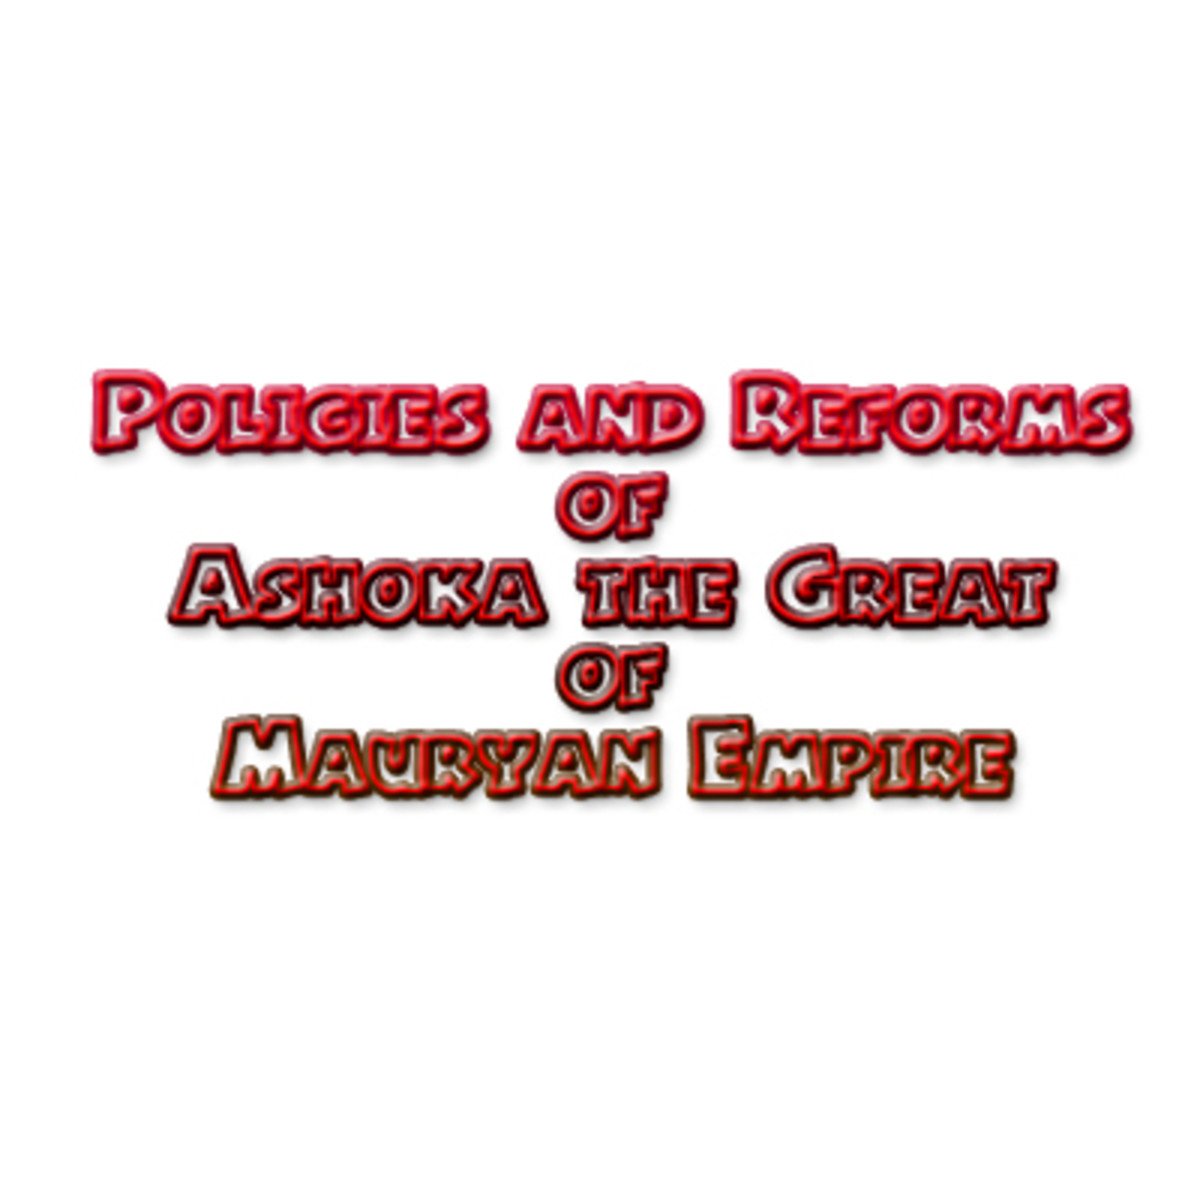 Policies and Reforms of Ashoka the Great of Mauryan Empire